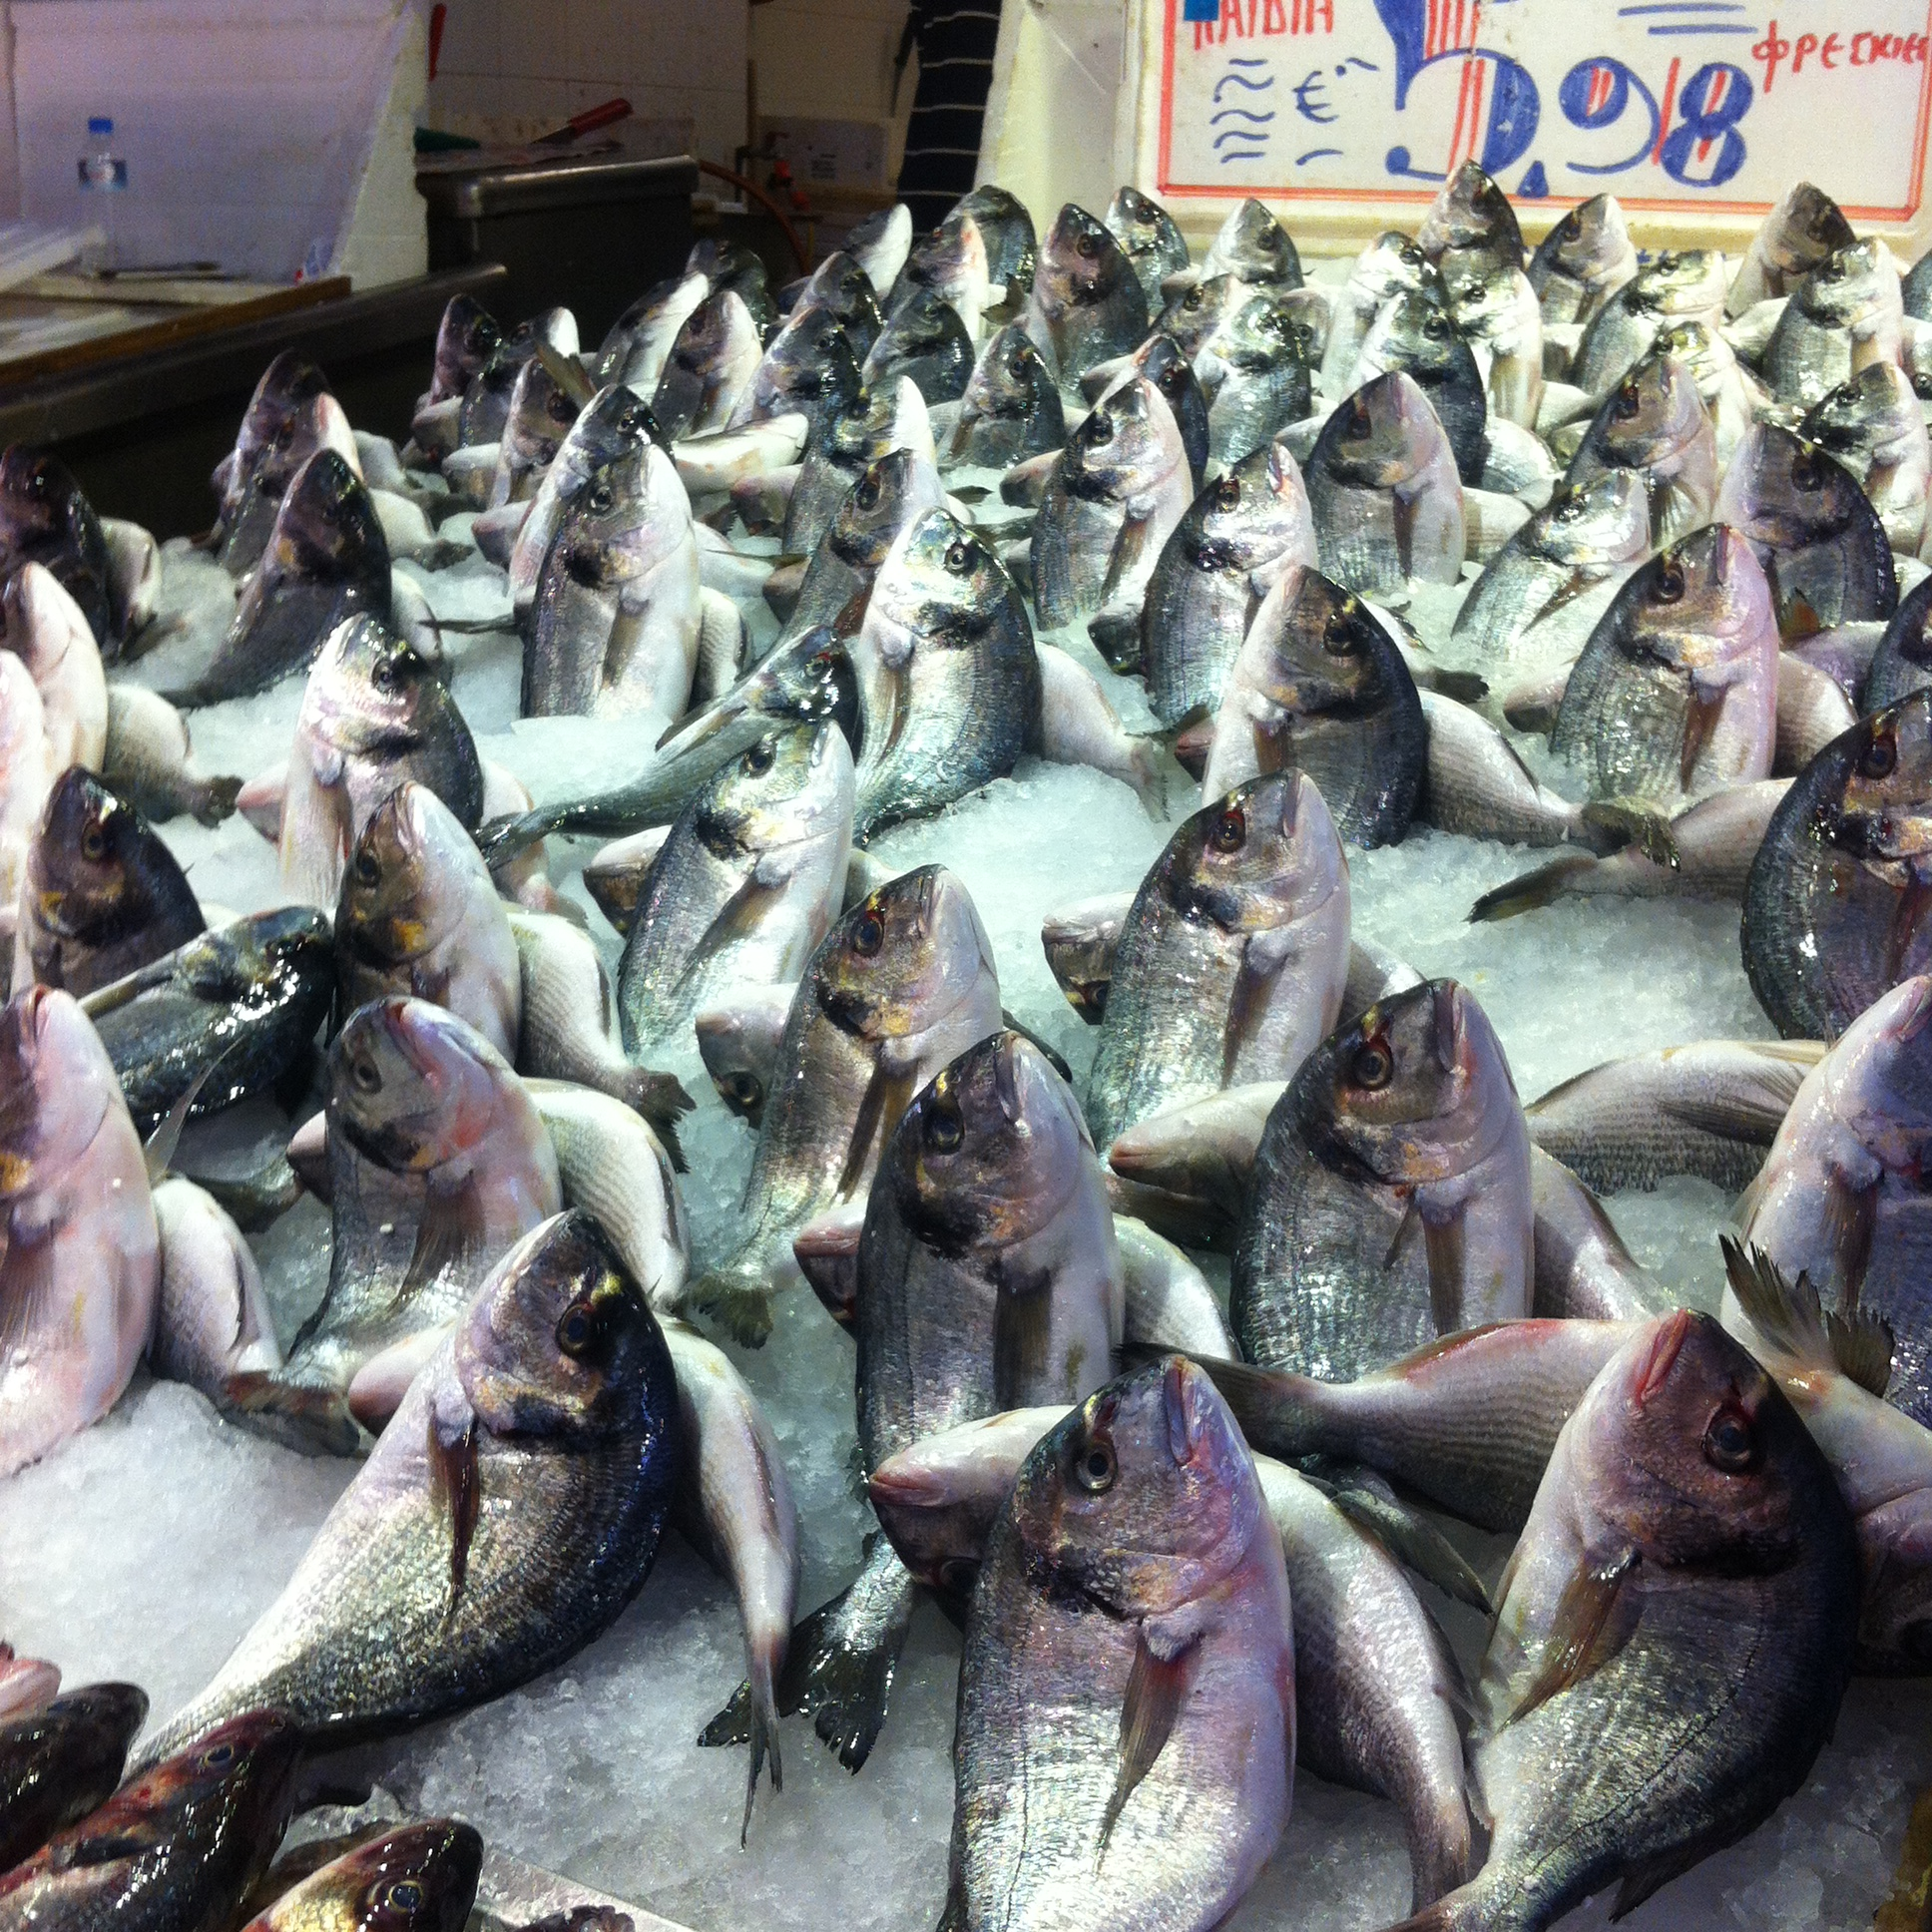 At the meat market, Everyone was waiting to meet us